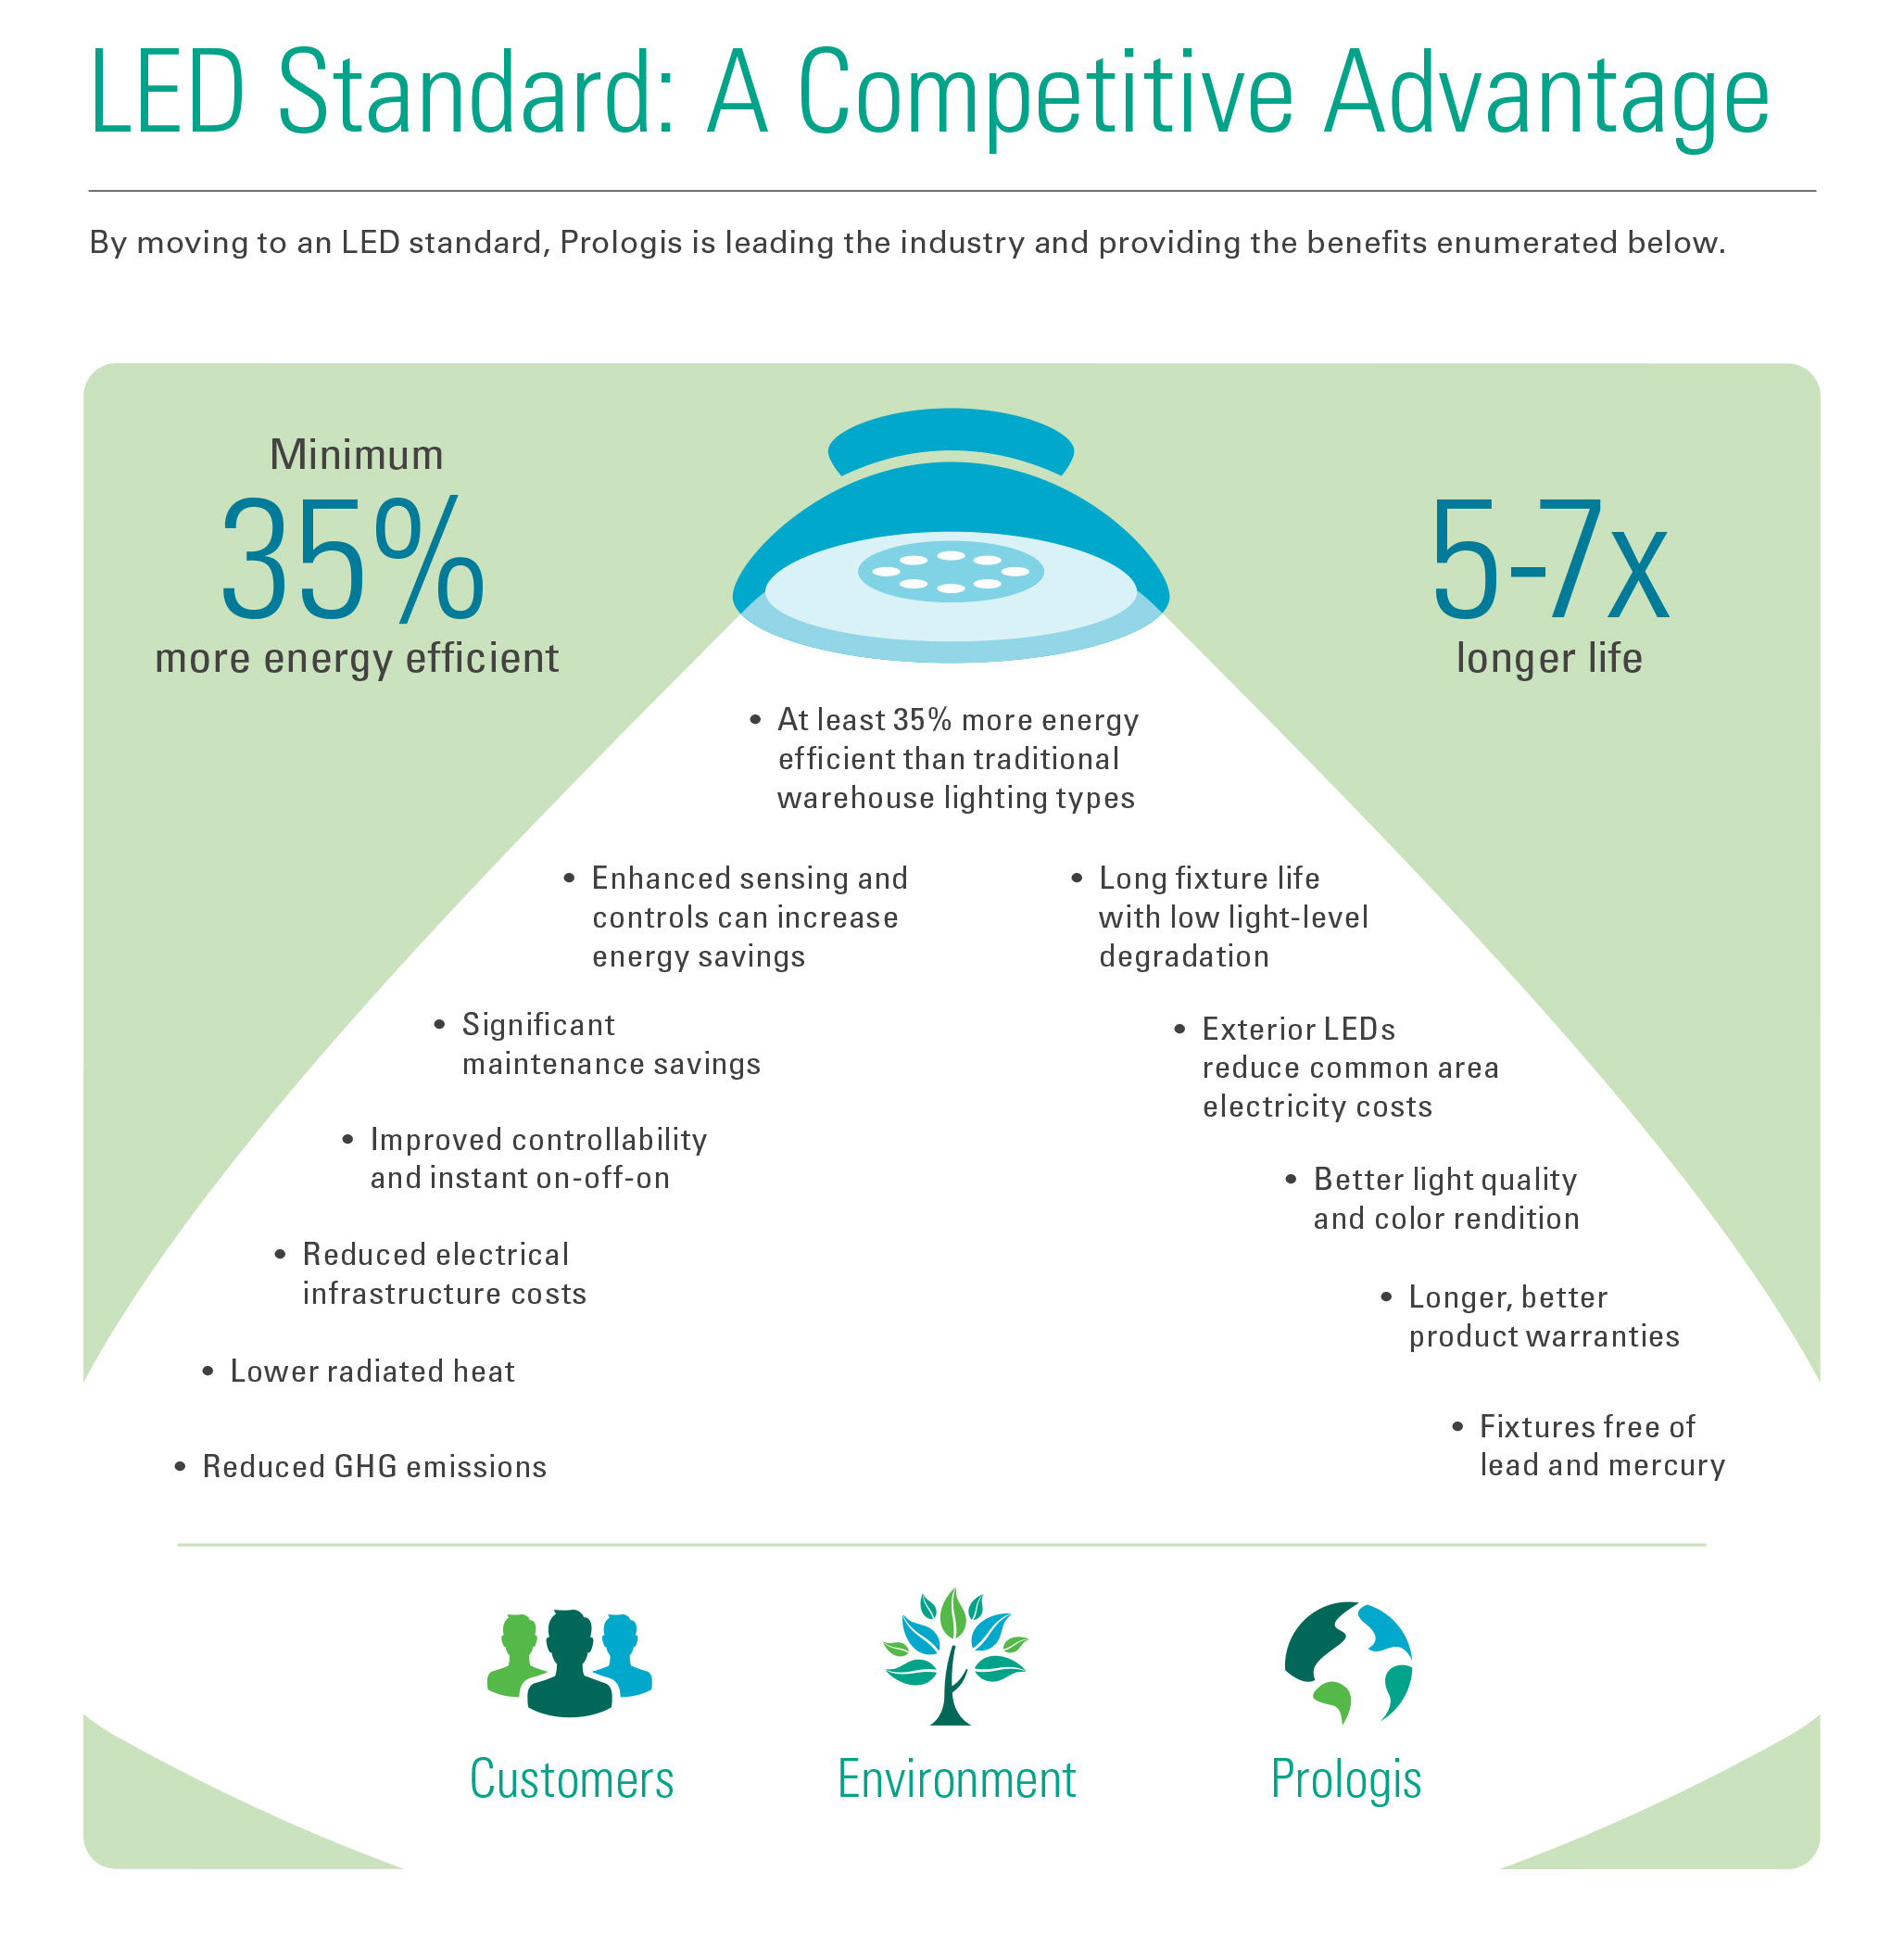 LED Standard: A Competitive Advantage